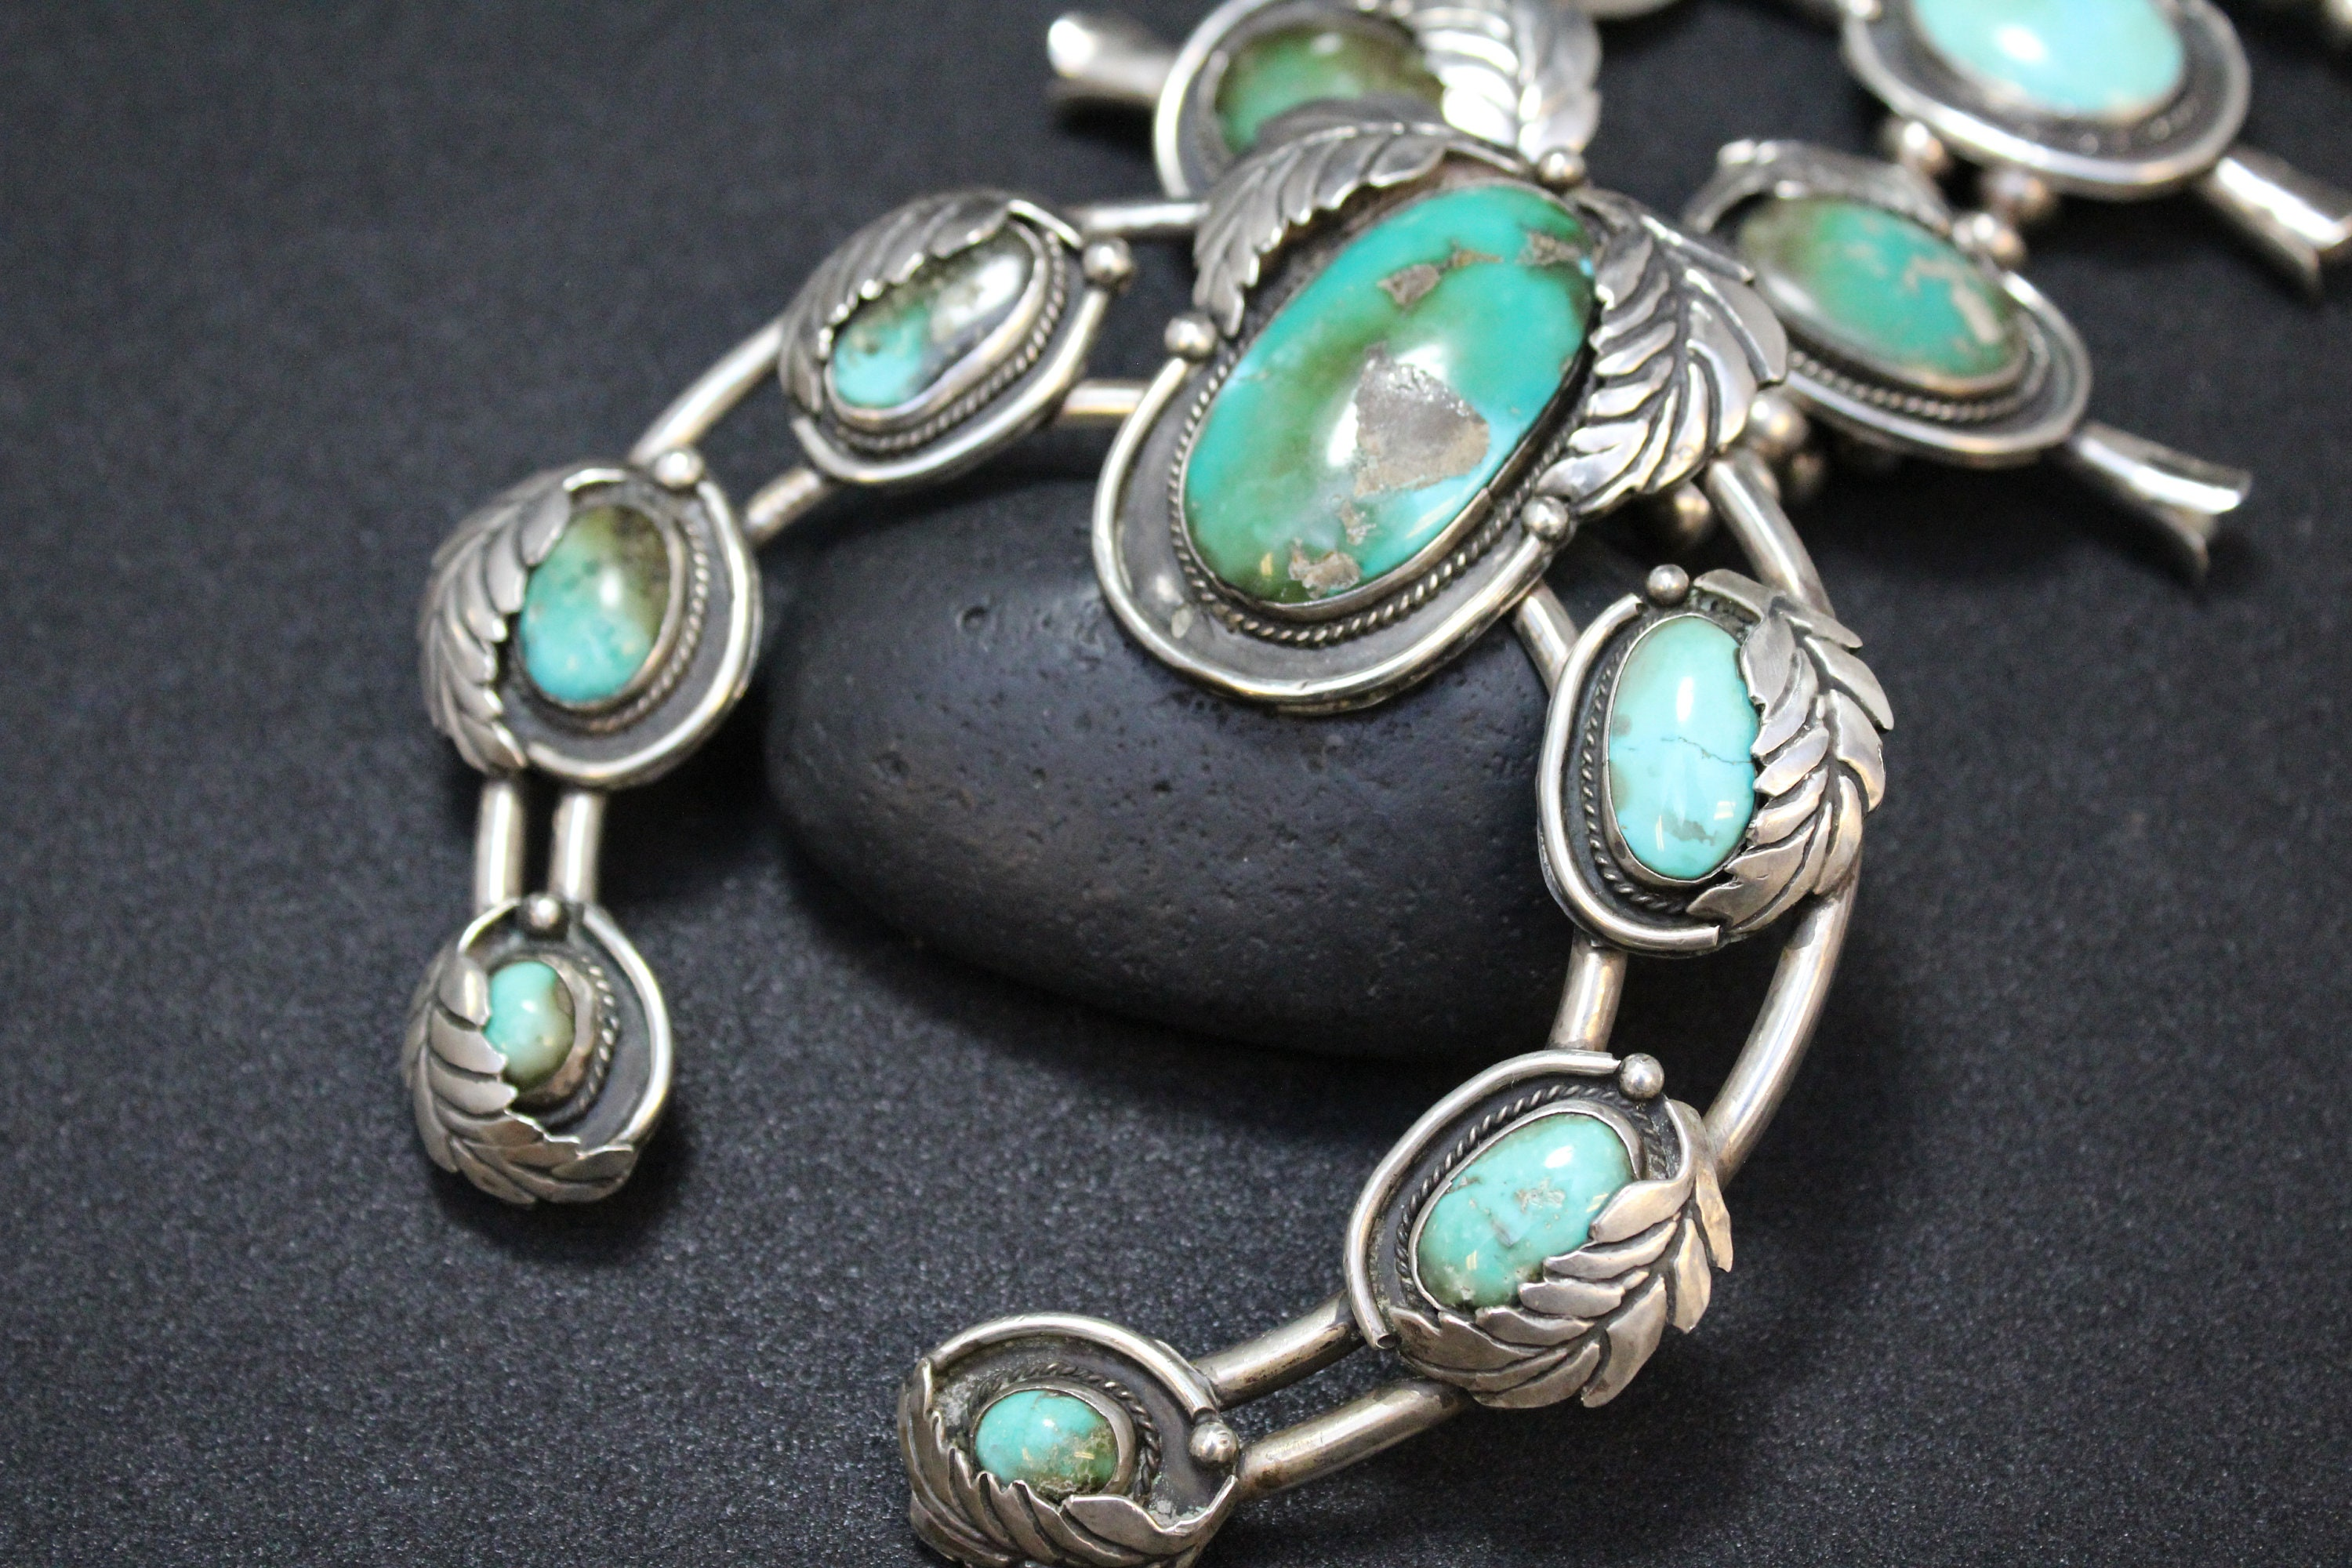 f669cd296 Reserved for Jake D: Large Old Pawn Sterling Silver Turquoise Squash  Blossom Necklace, Turquoise Squash Blossom